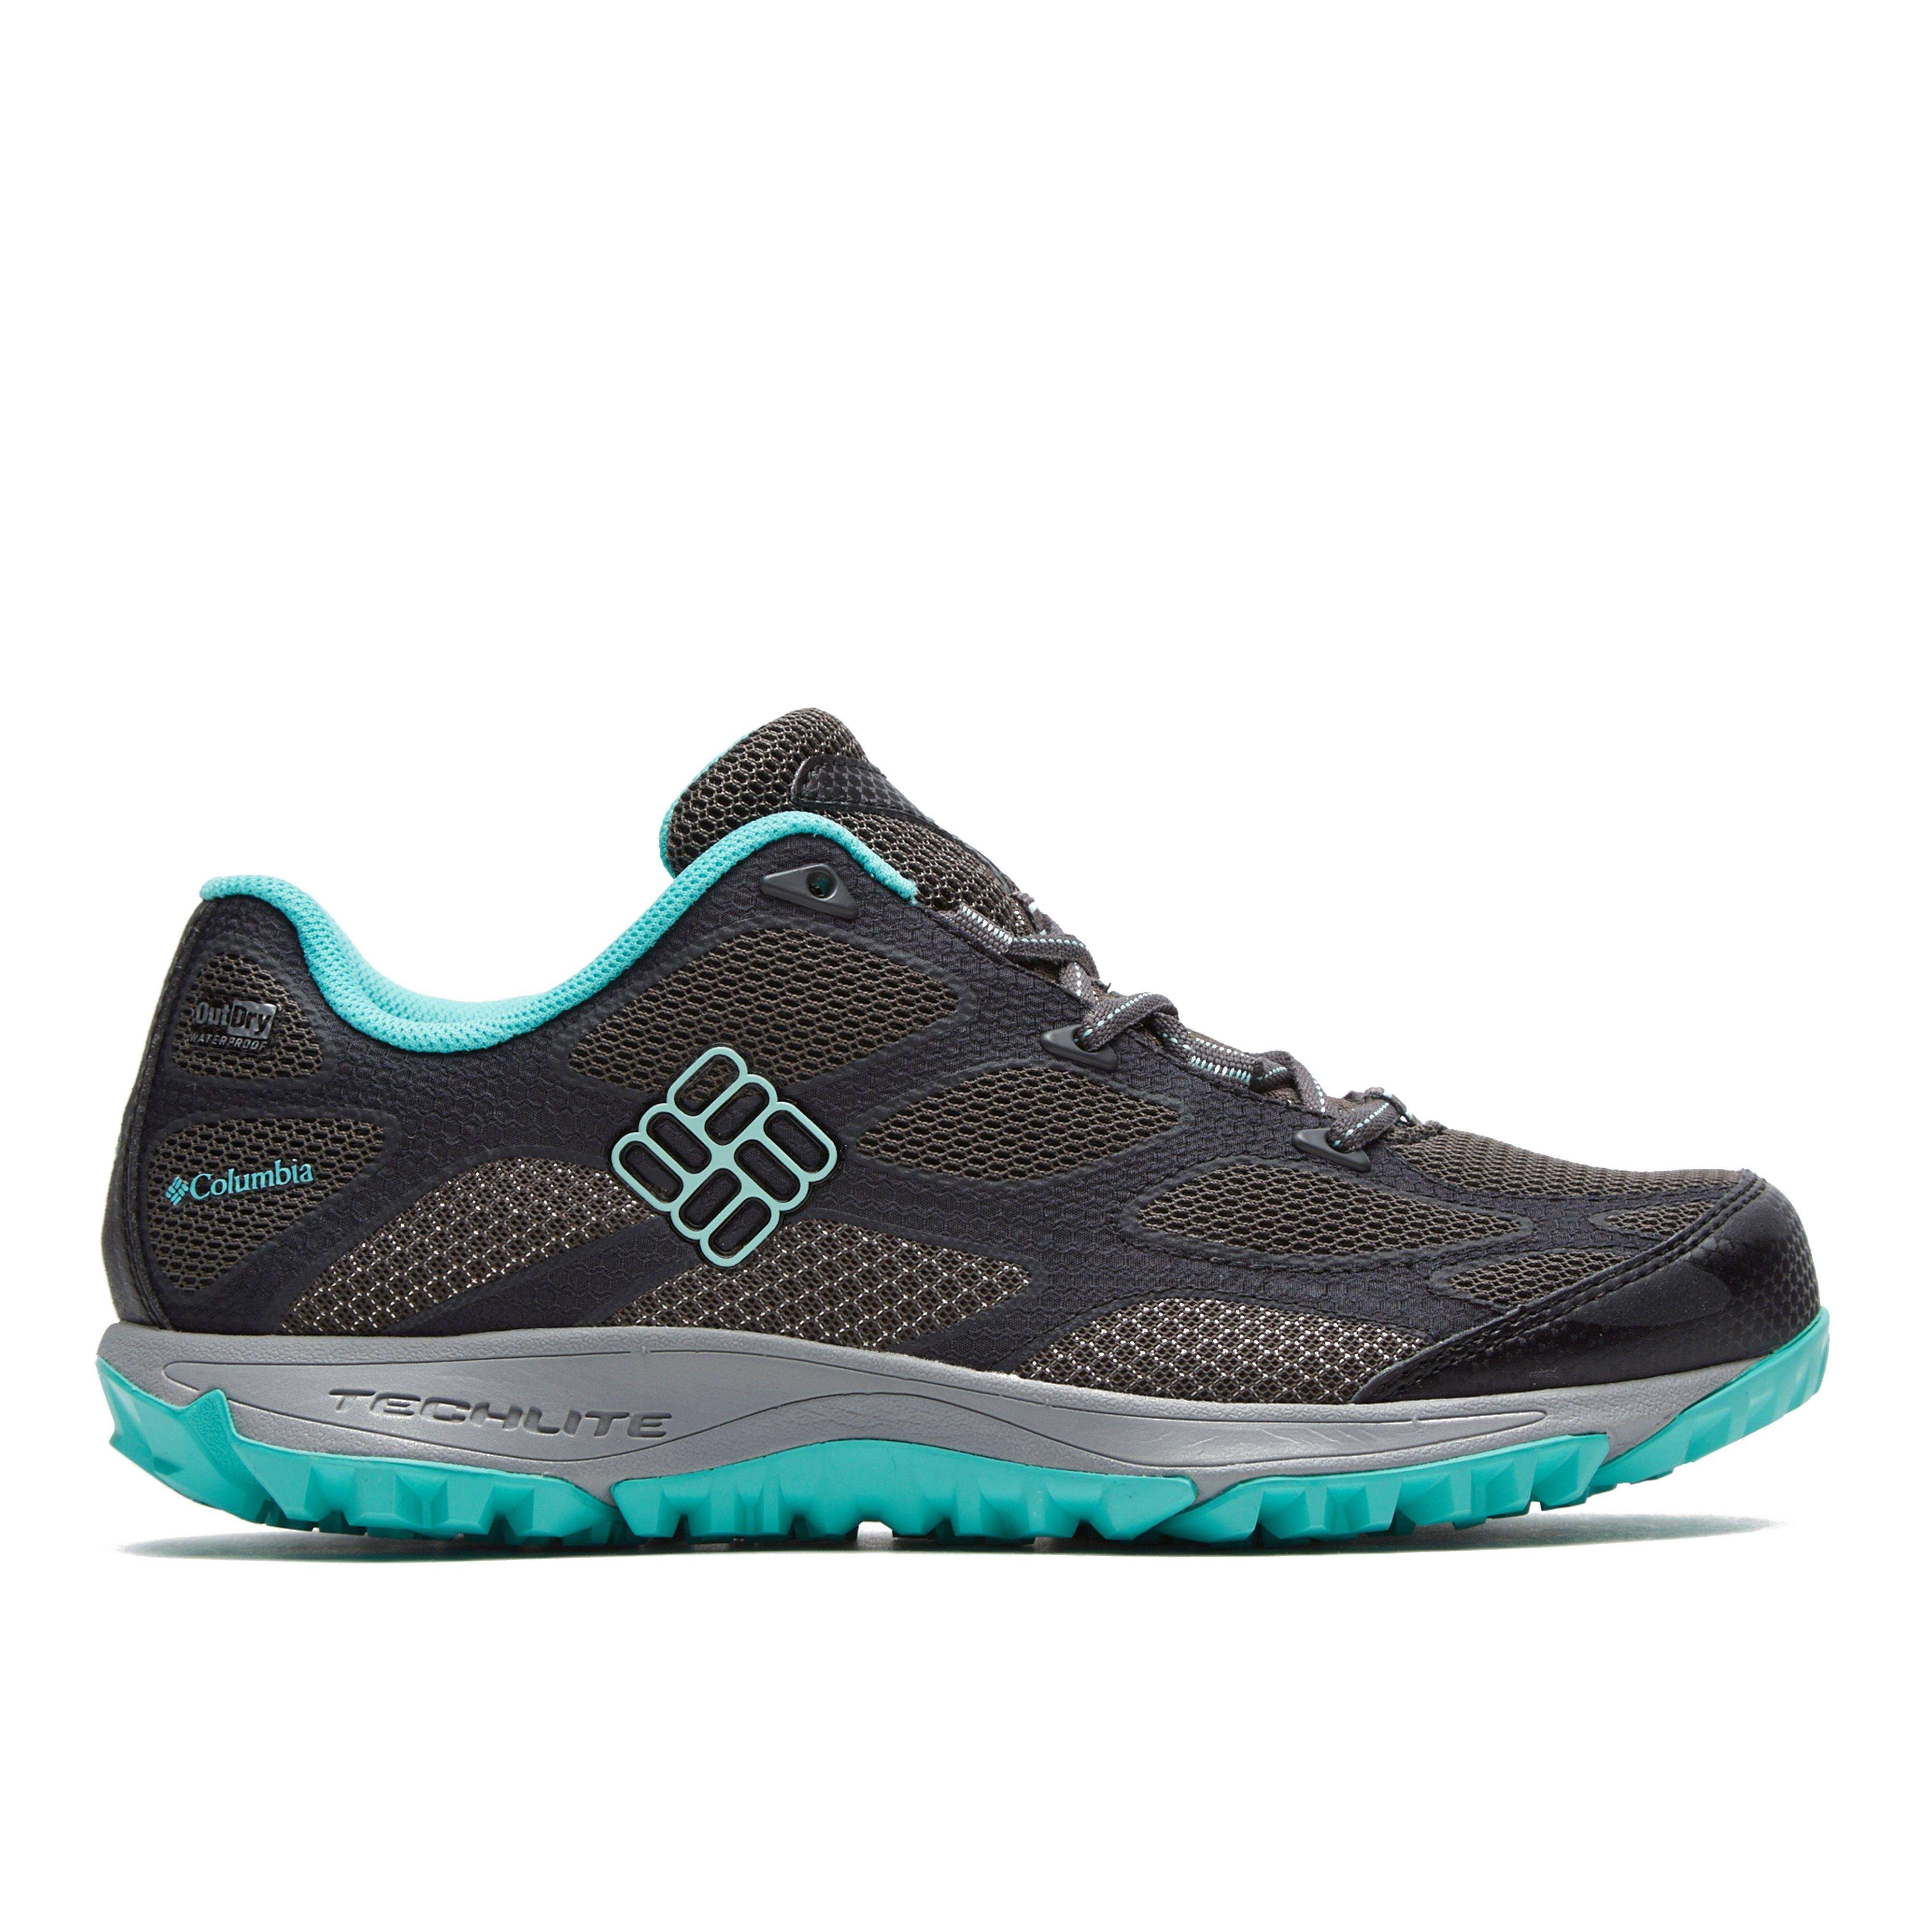 COLUMBIA Women's Conspiracy IV OutDry® Multi-Sport Shoe